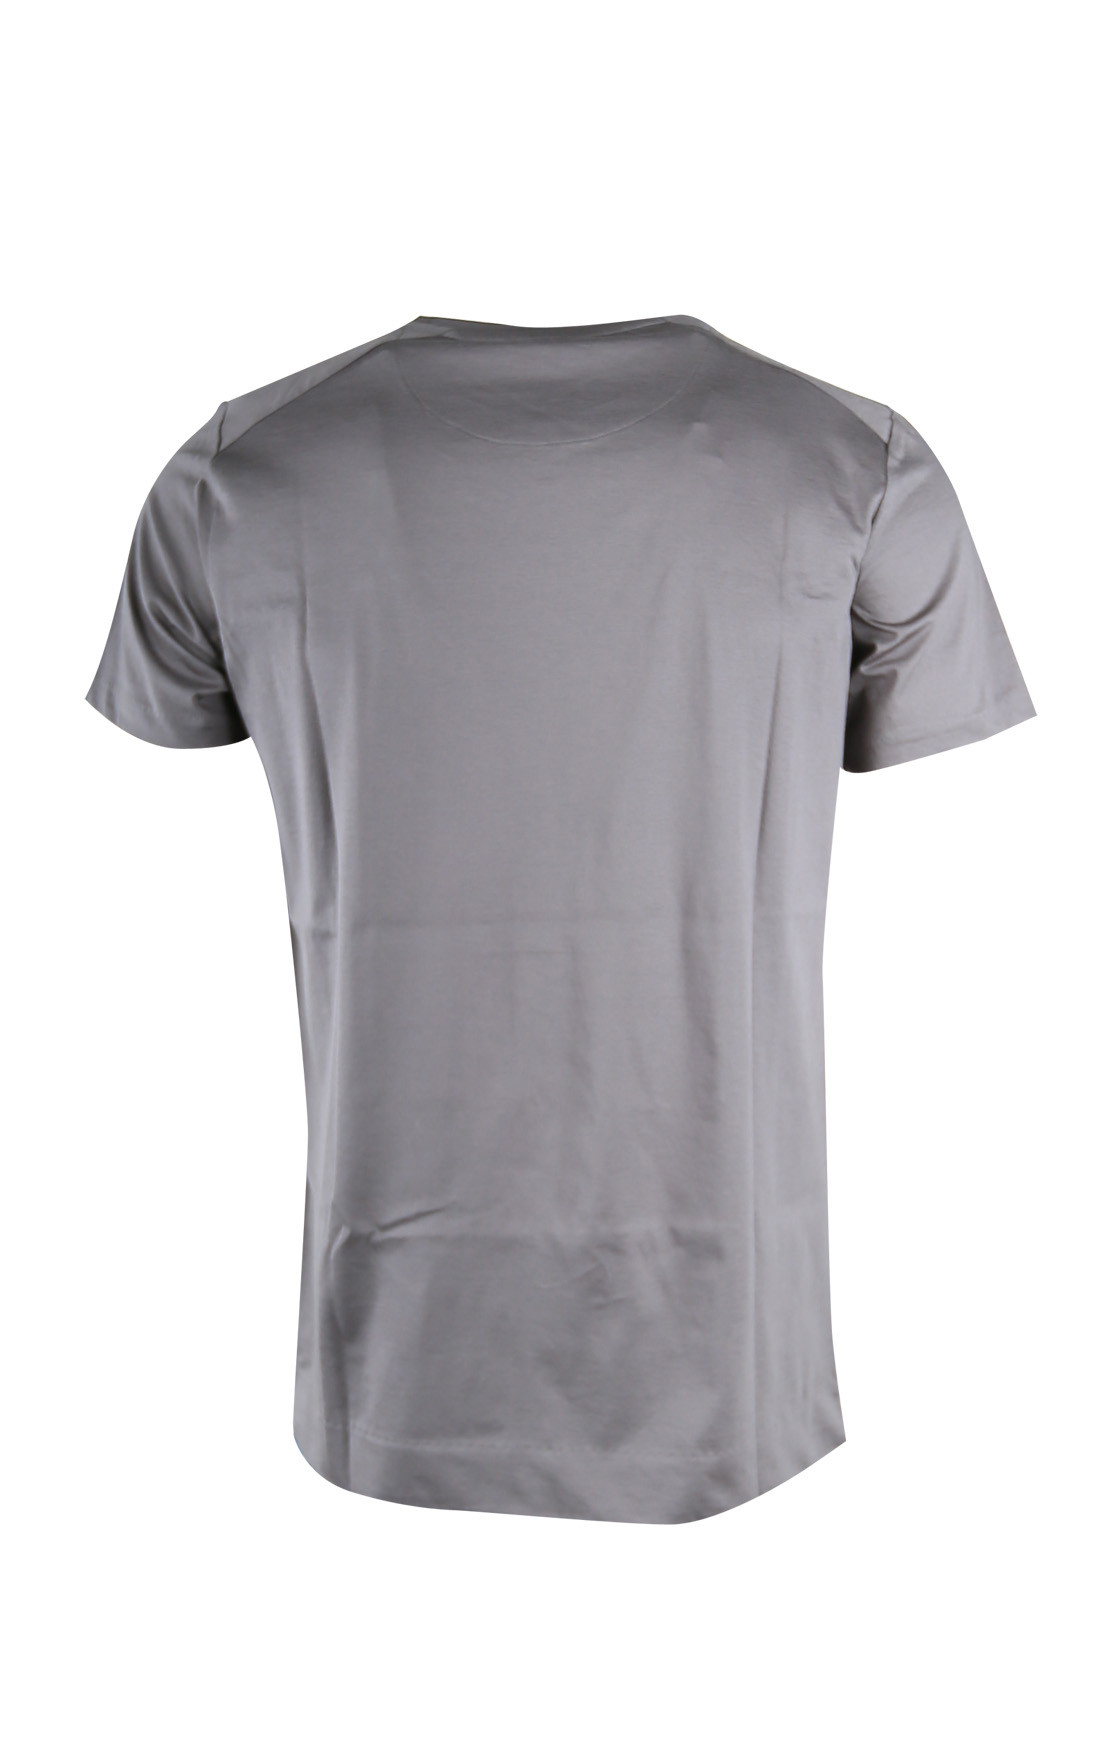 Limitato - Pink Flavoured Grey T-Shirt (PINKFLAVOUREDGREY)